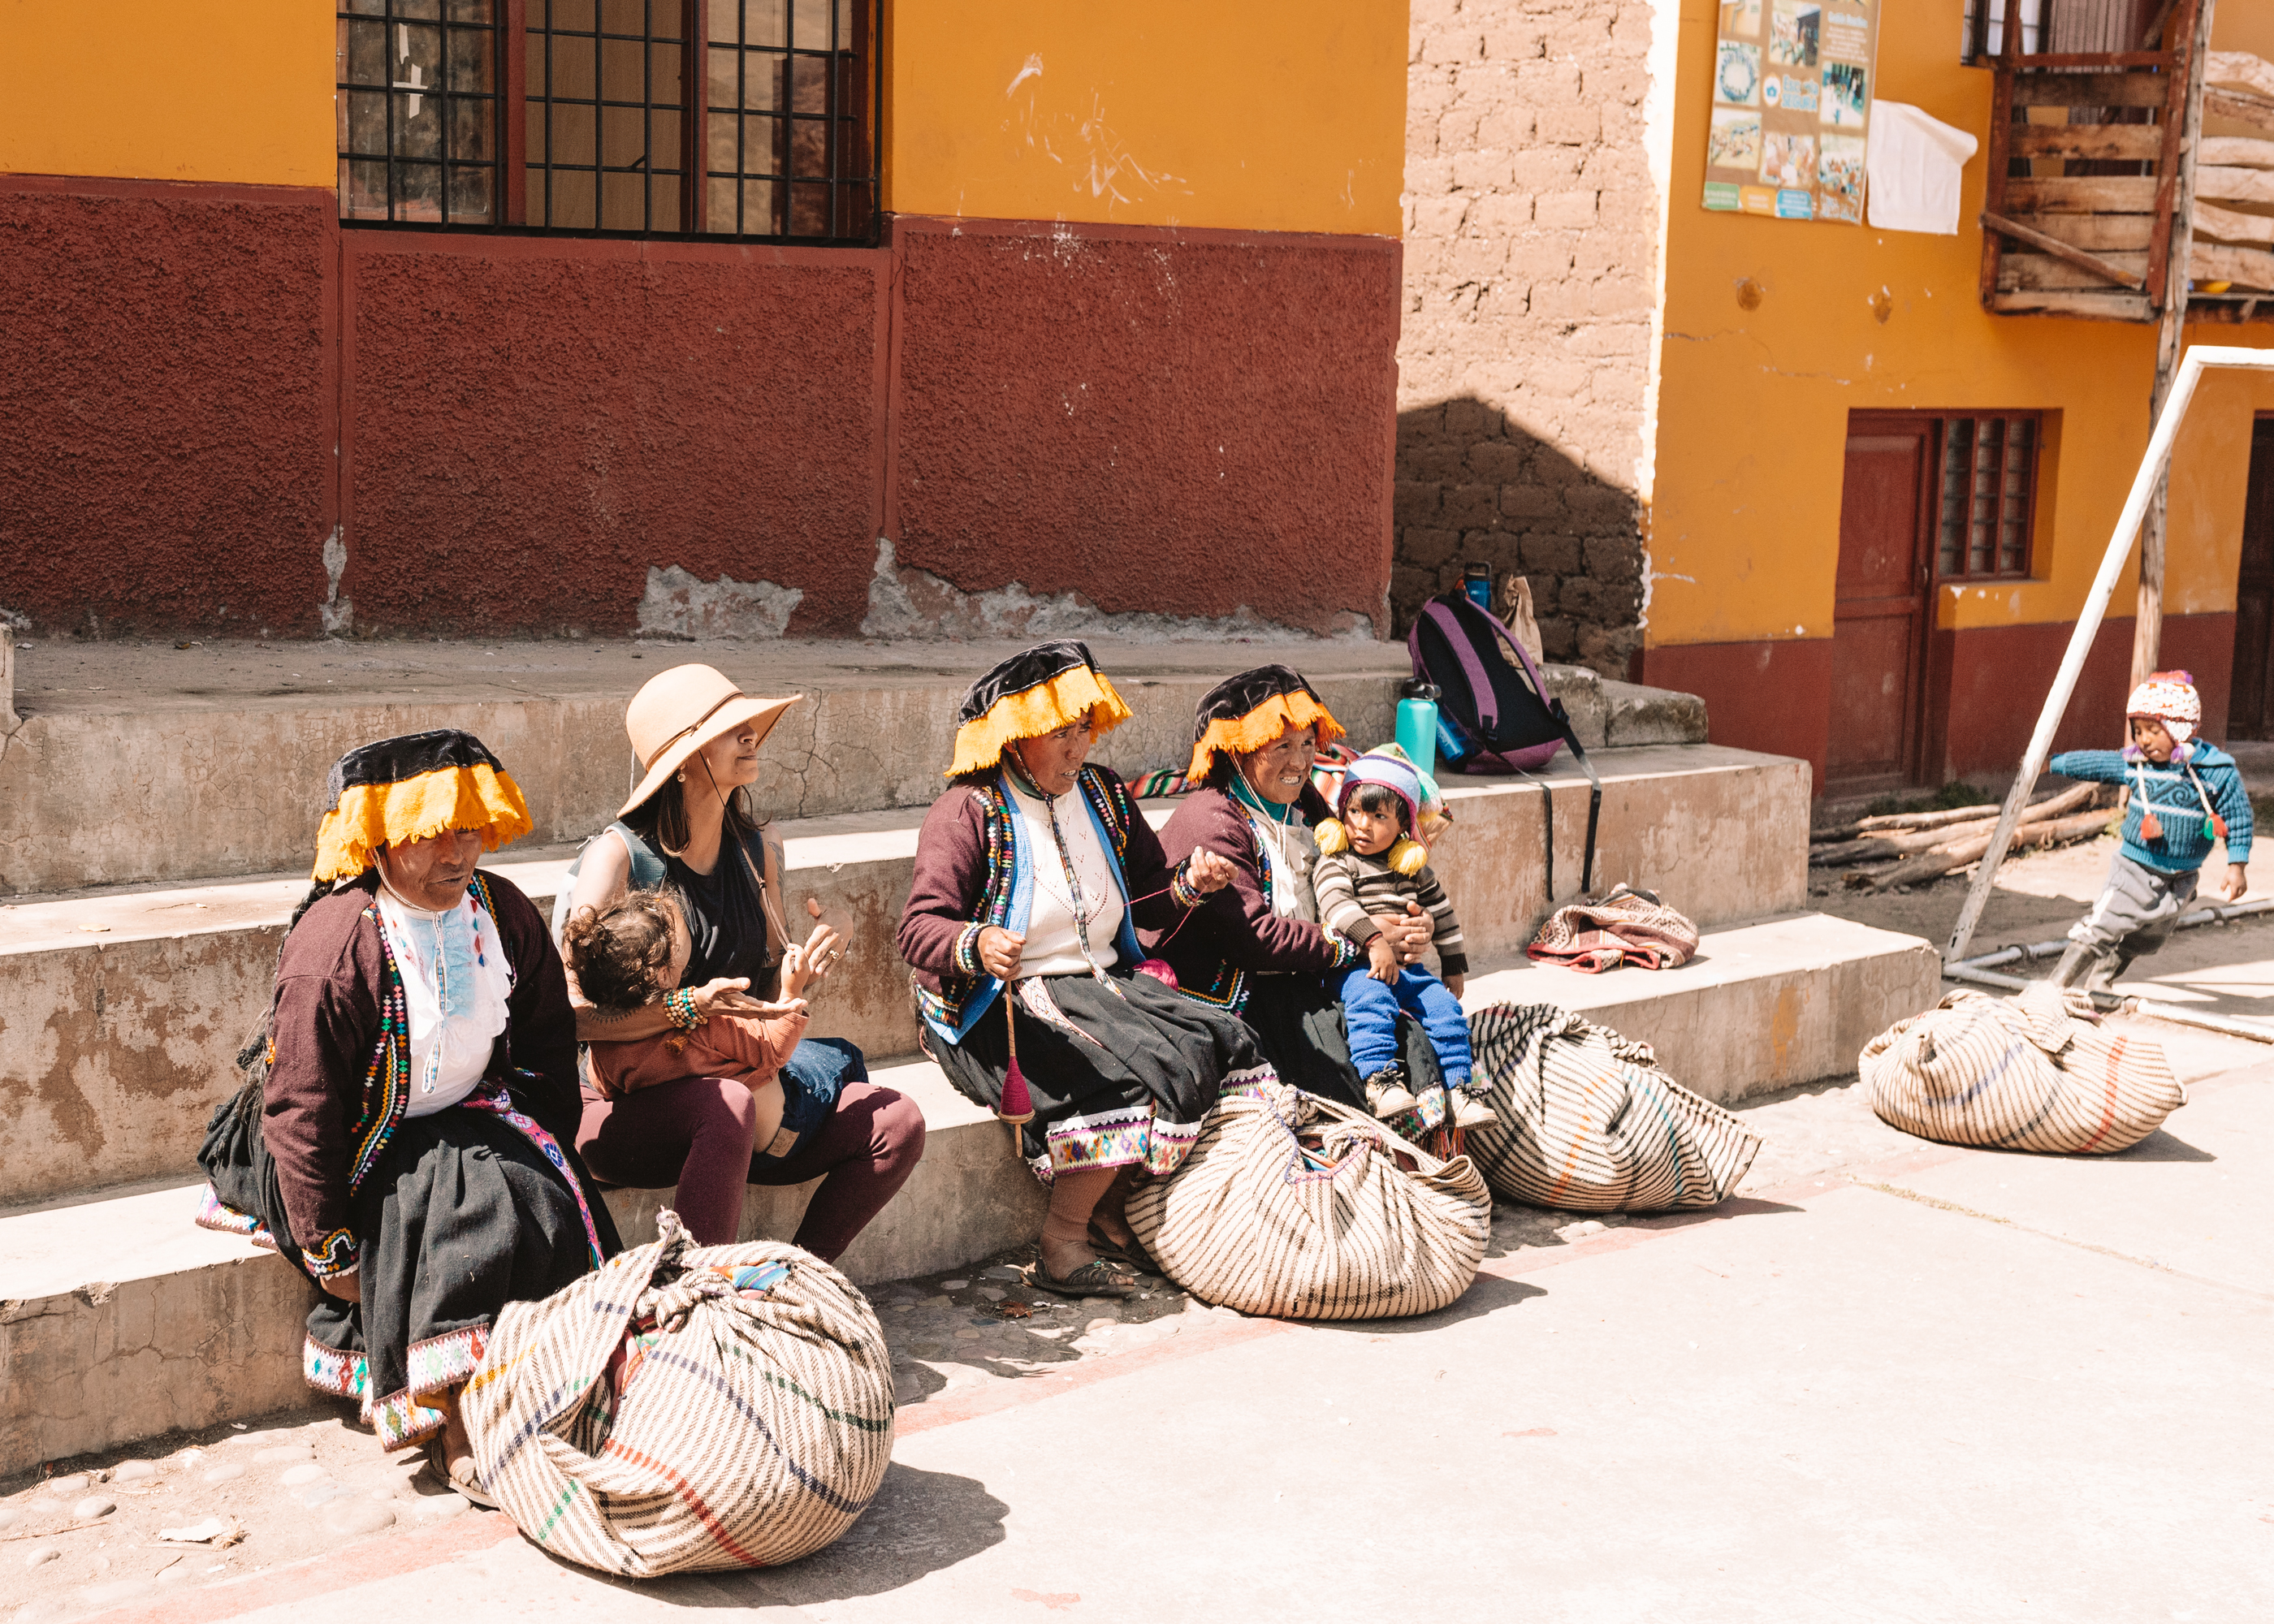 mothers of different cultures, sitting together as one #peru #motherhood